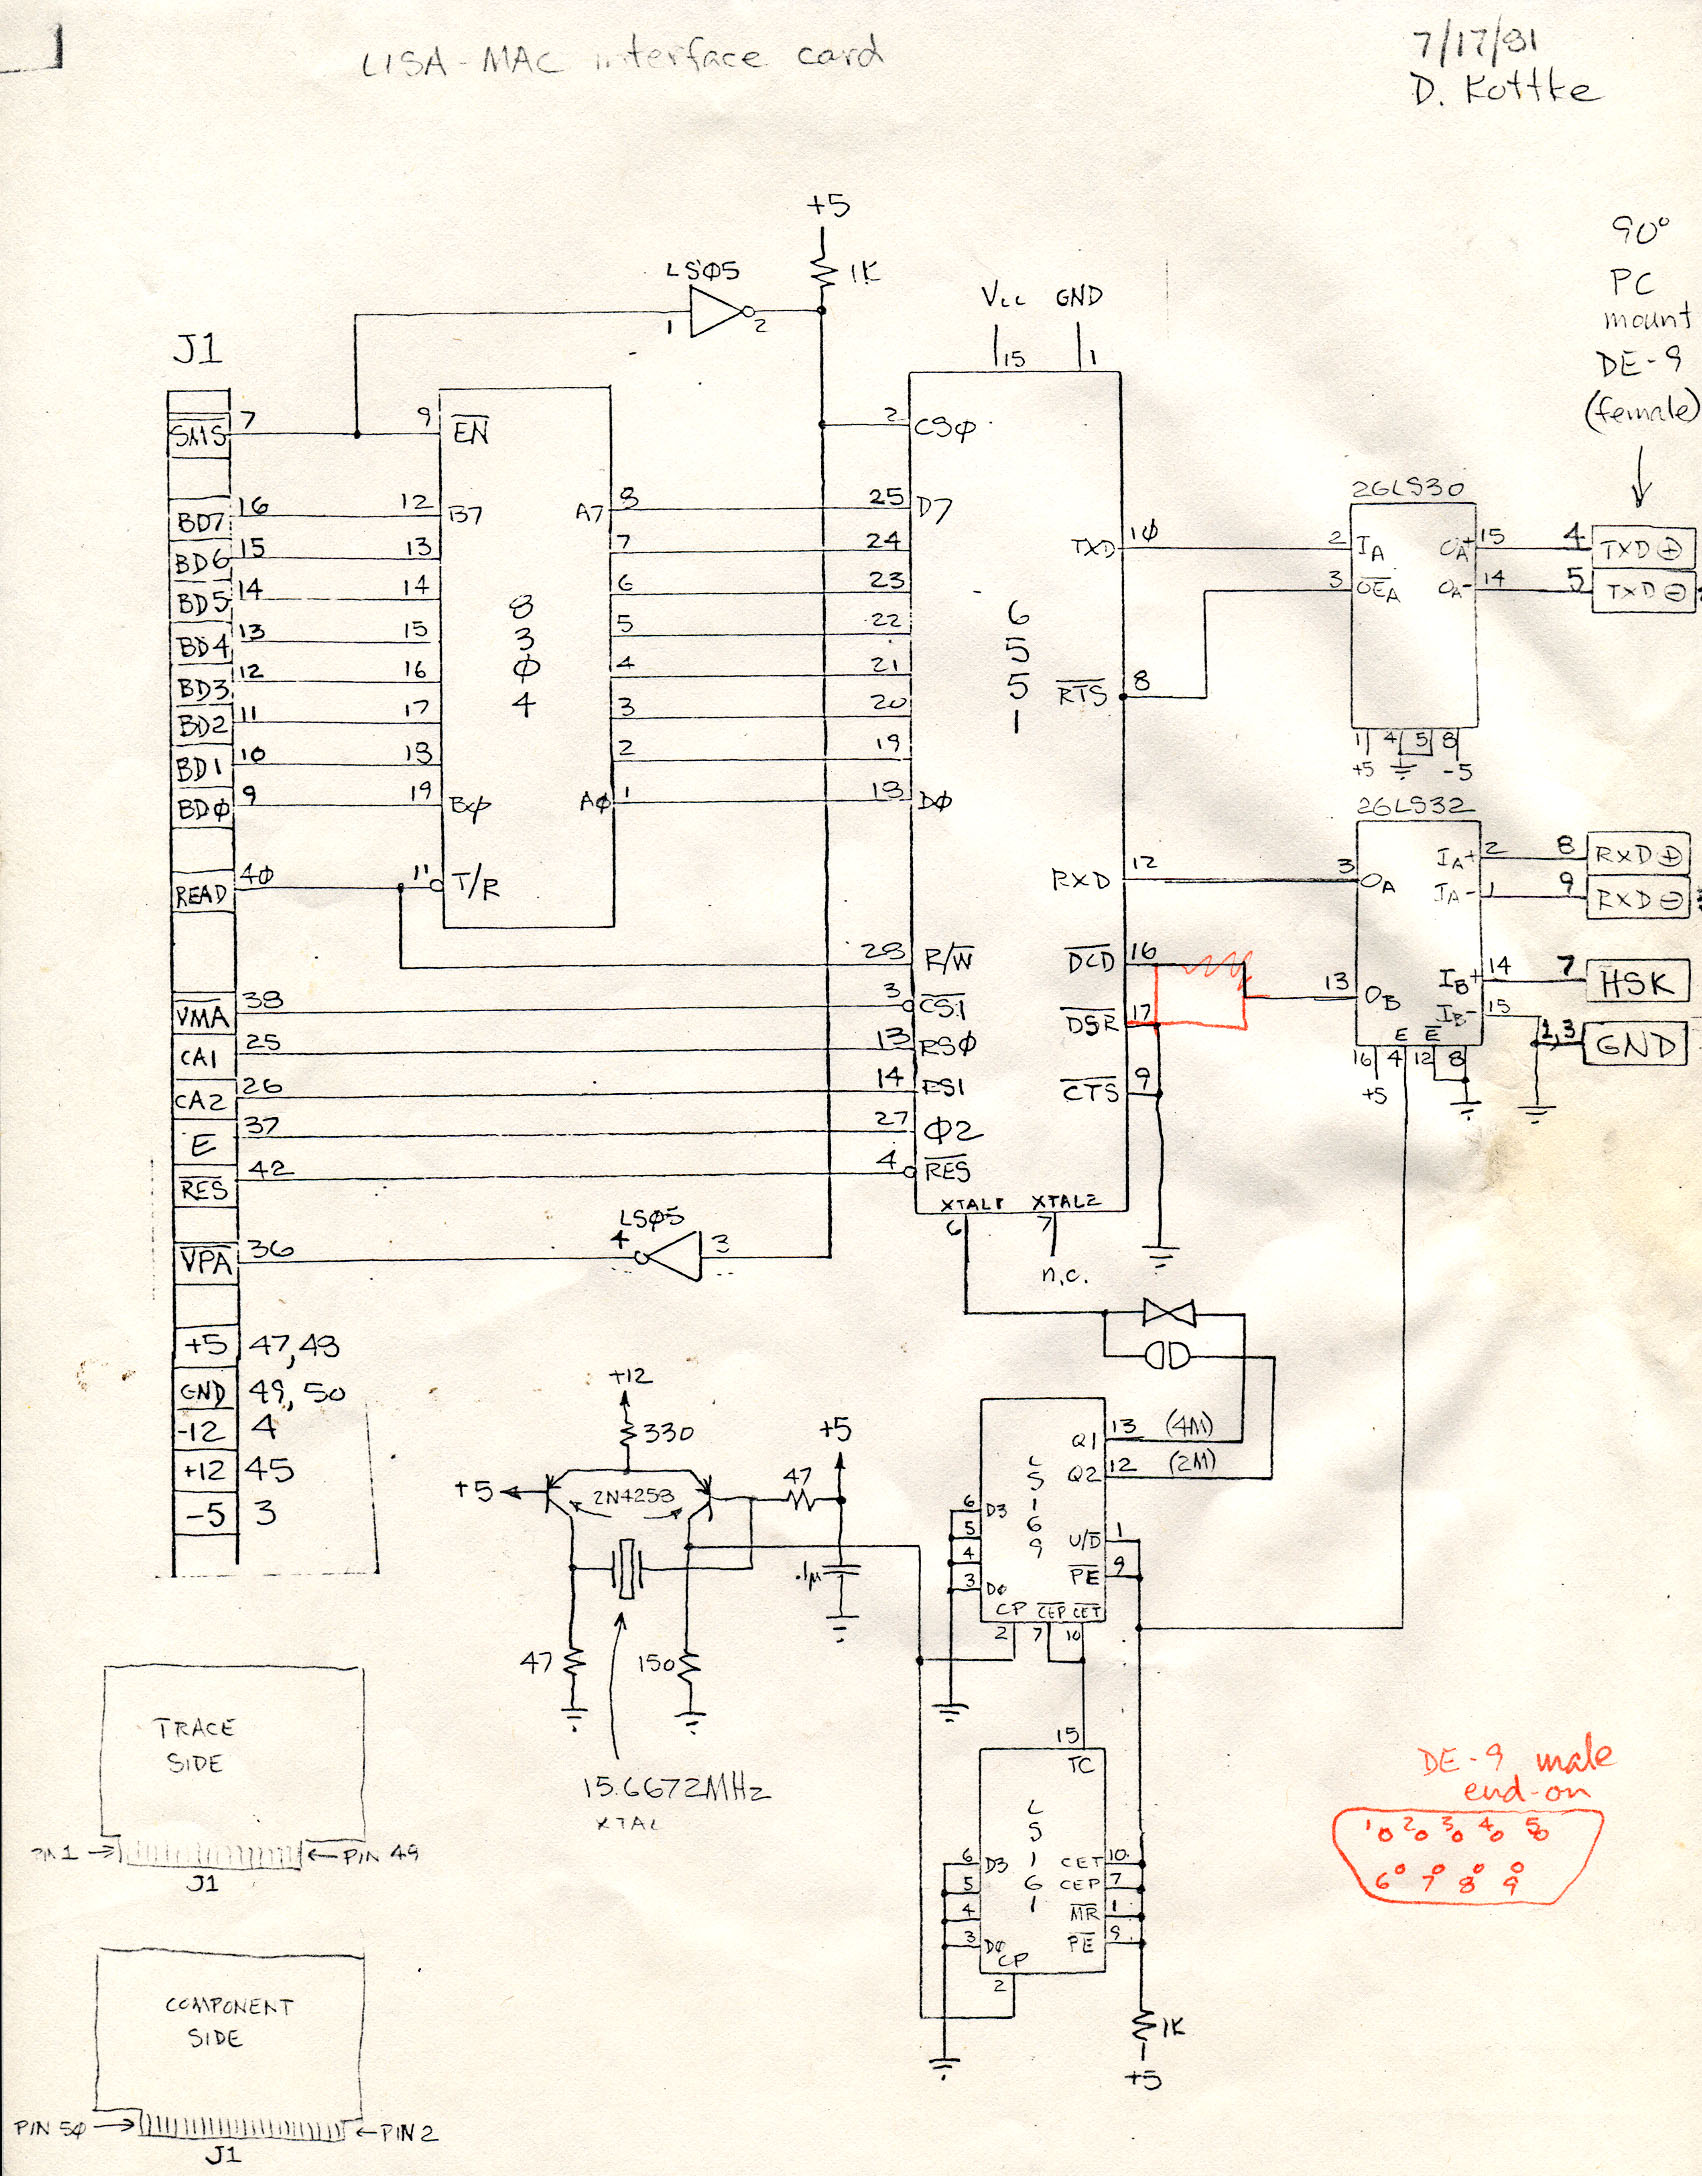 DigiBarn Diagrams: Early Mac and Lisa Interfacs Schematic Designs